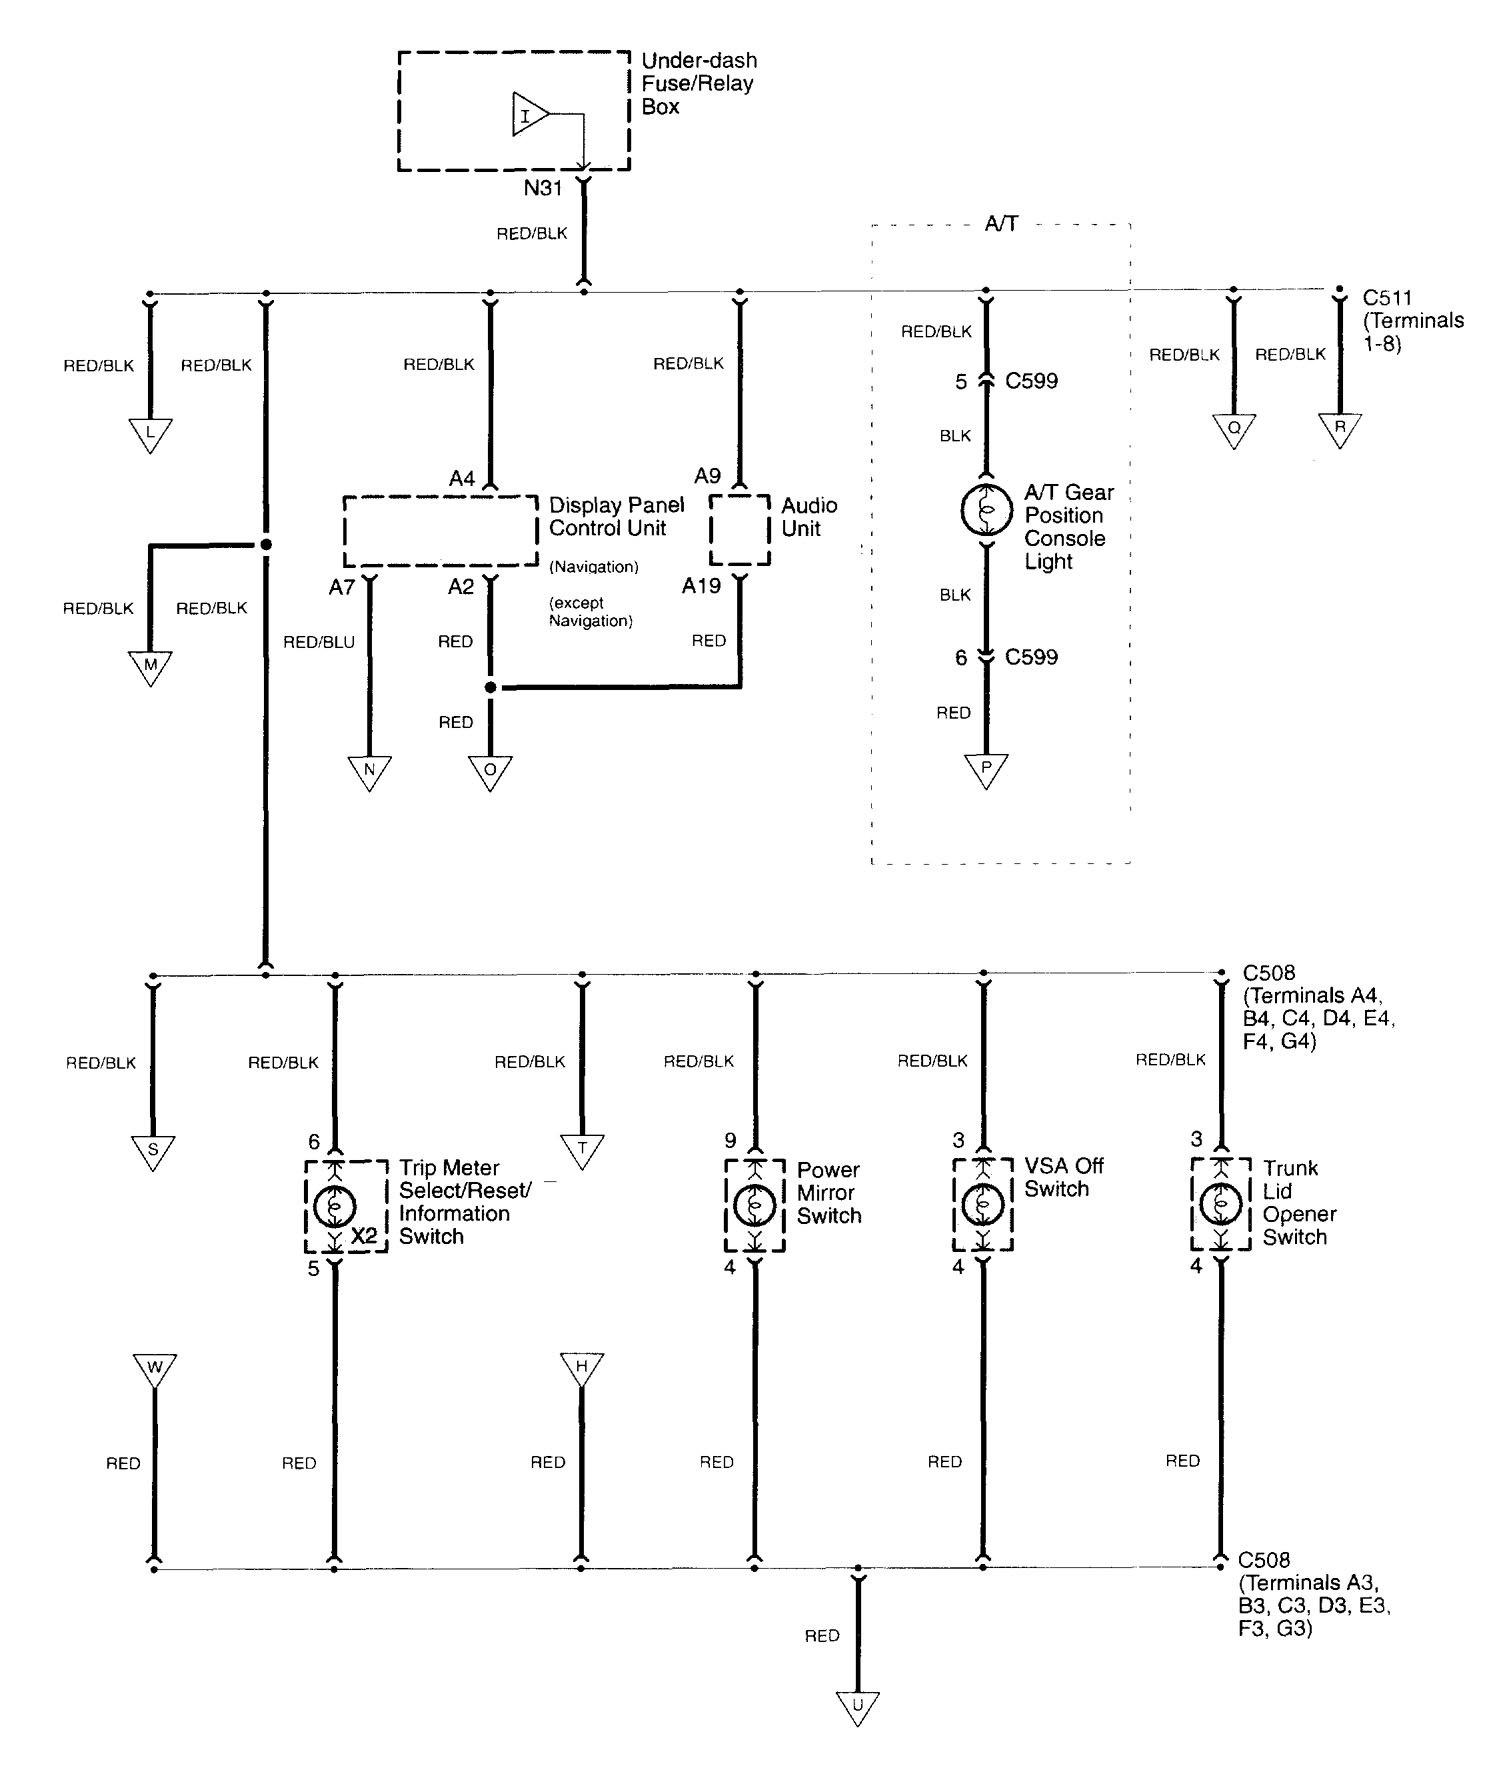 WRG-9423] Acura Tl Navigation Wiring Diagram on